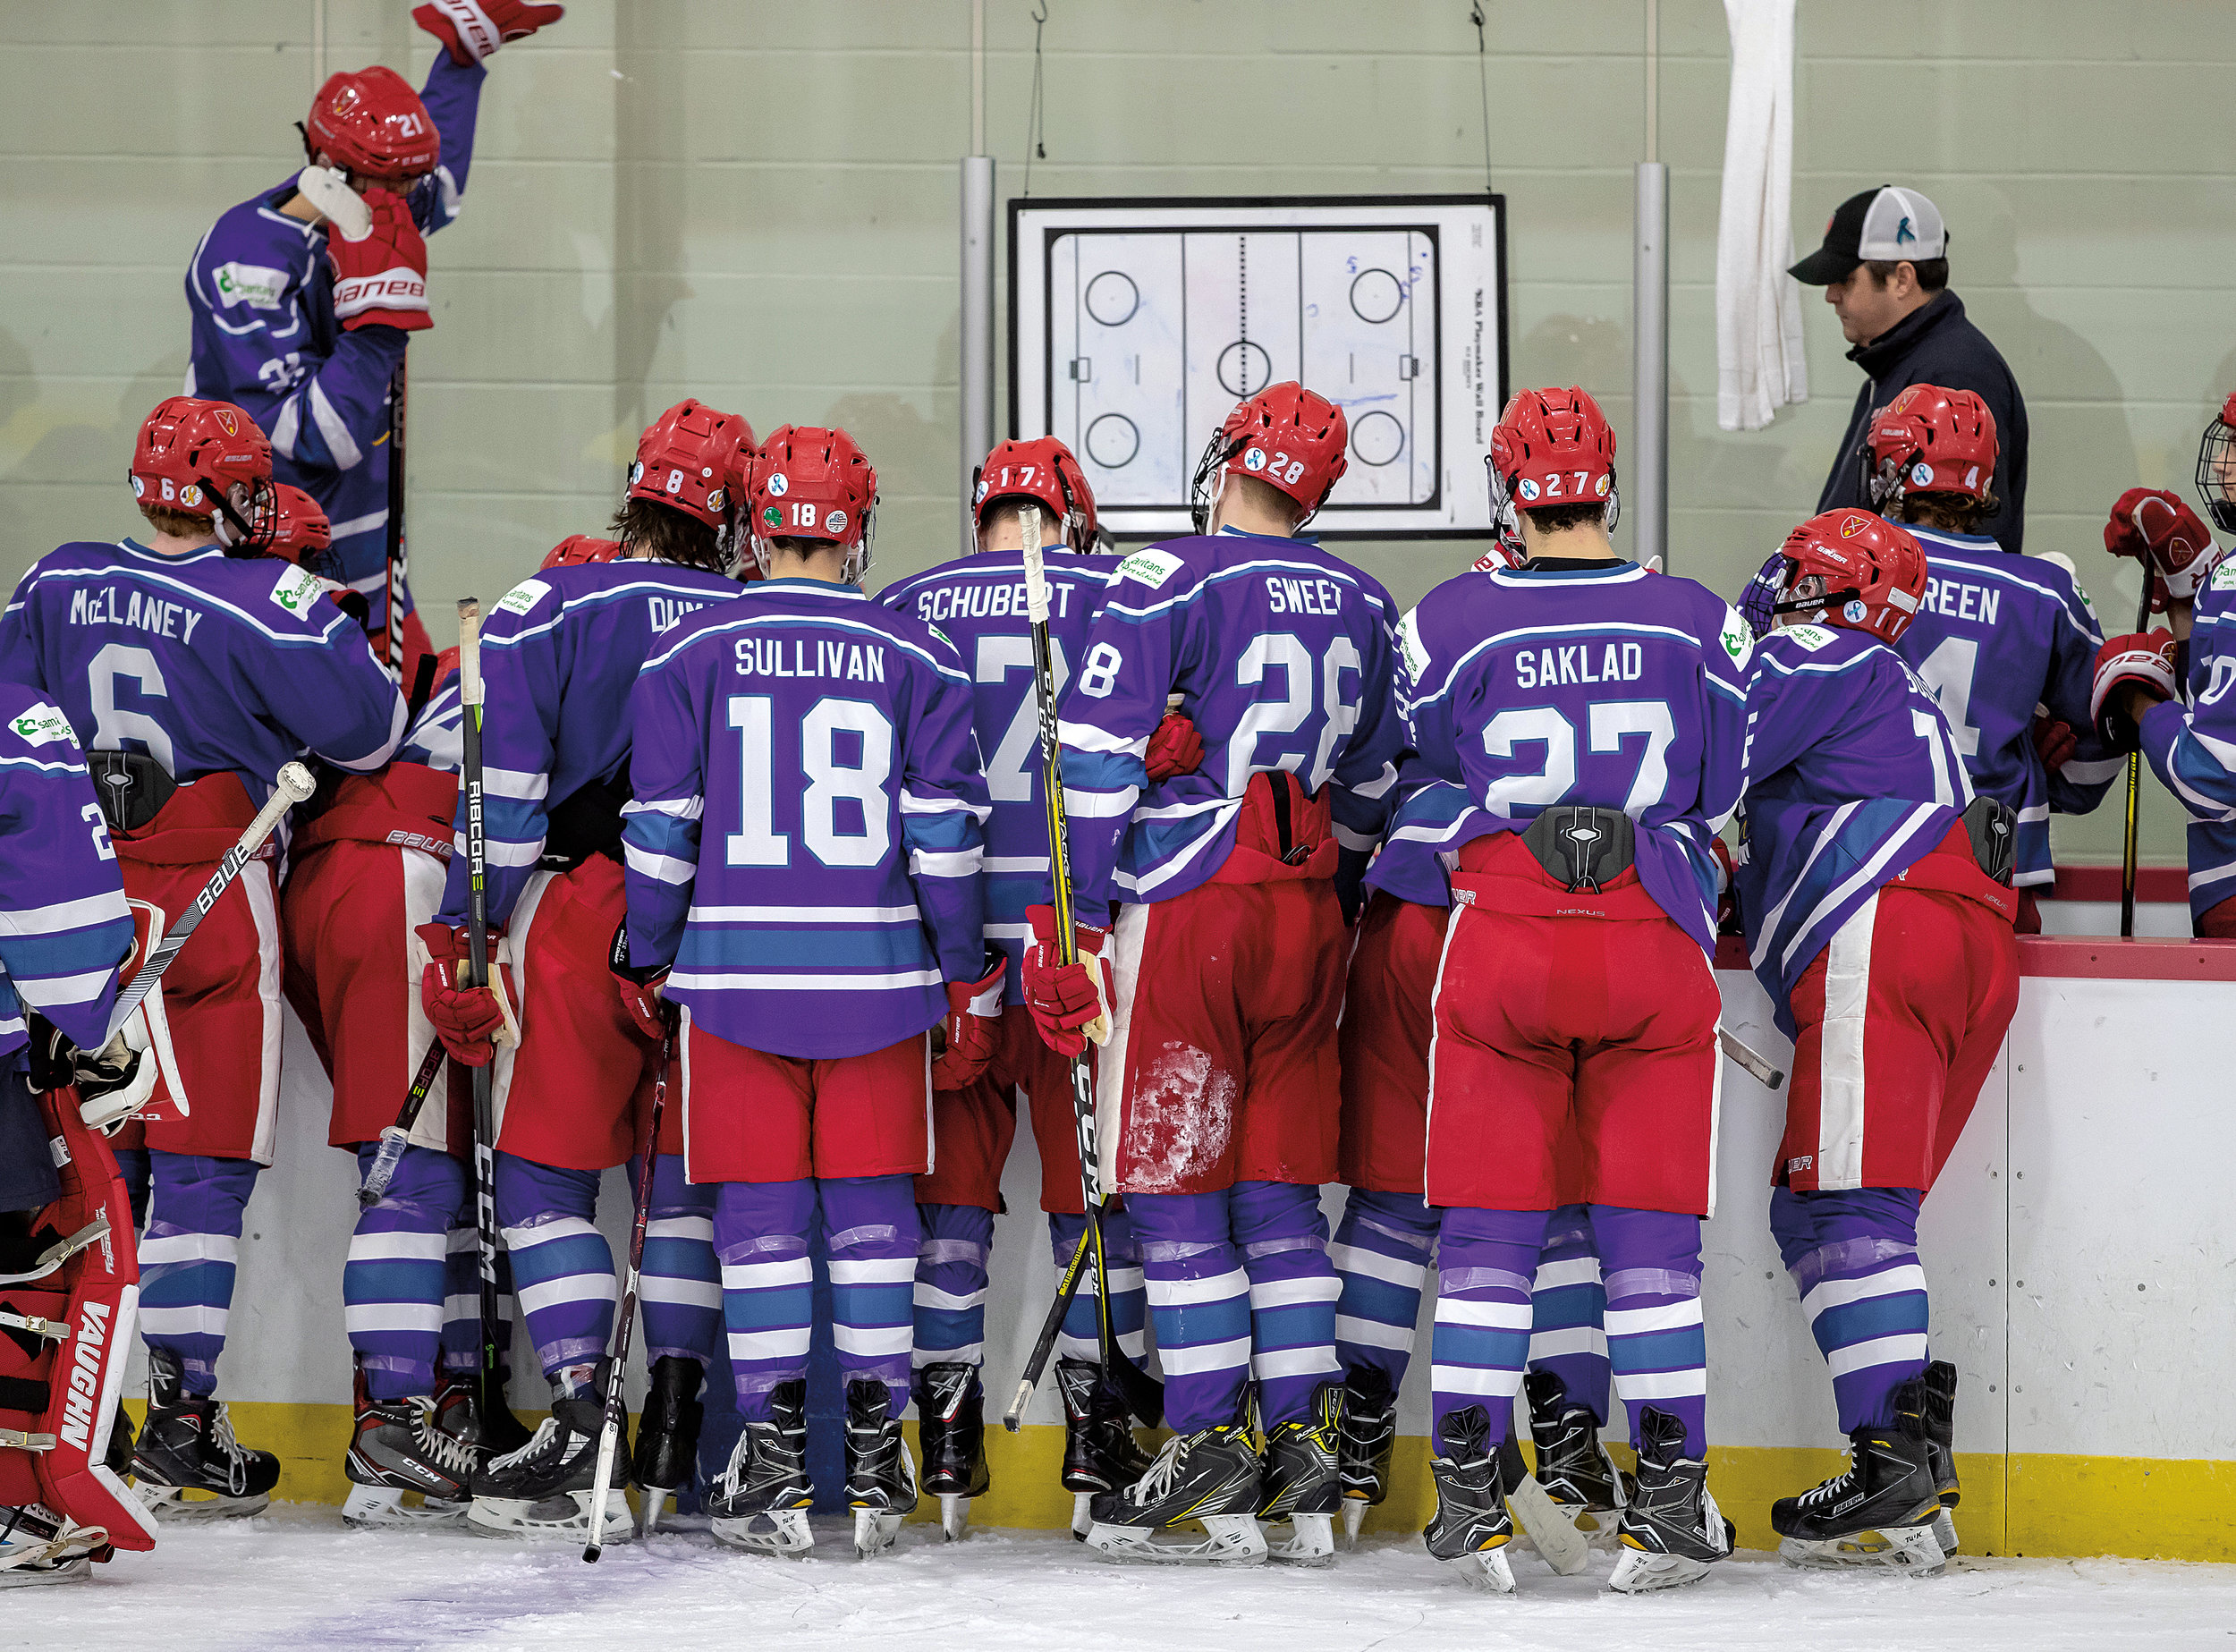 In support of Samaritans, members of the boys varsity hockey team wore purple jerseys against Andover on January 18.